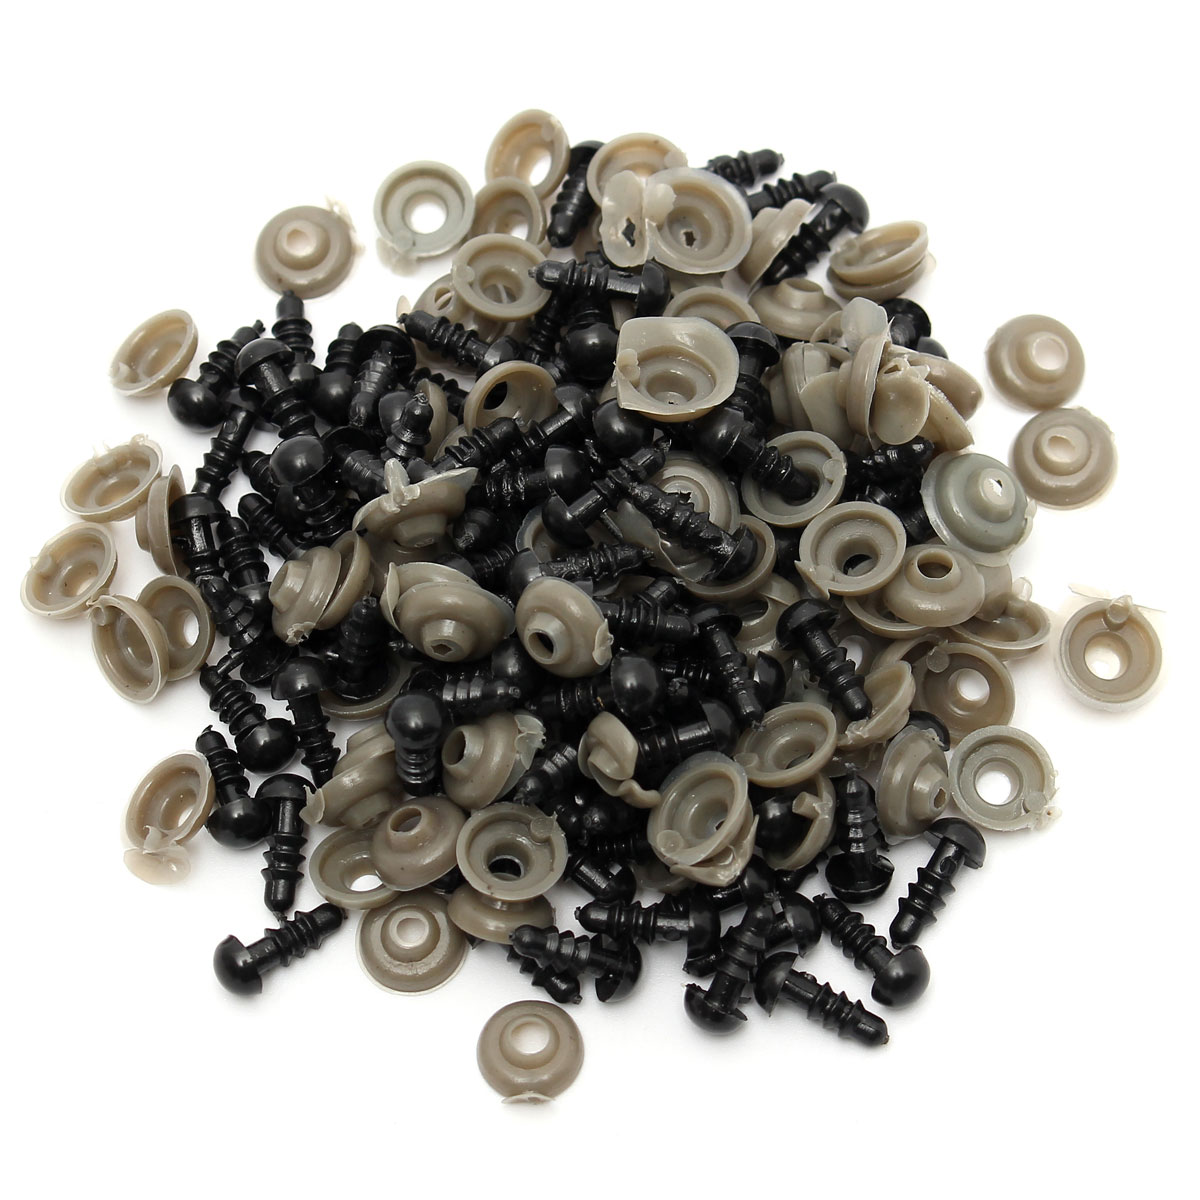 Wholesale Cheapest 100Pcs/50 Pairs 6mm Black Plastic Safety Eyes For Teddy Bear Stuffed Toys Snap Animal Puppet Dolls Craft(China (Mainland))